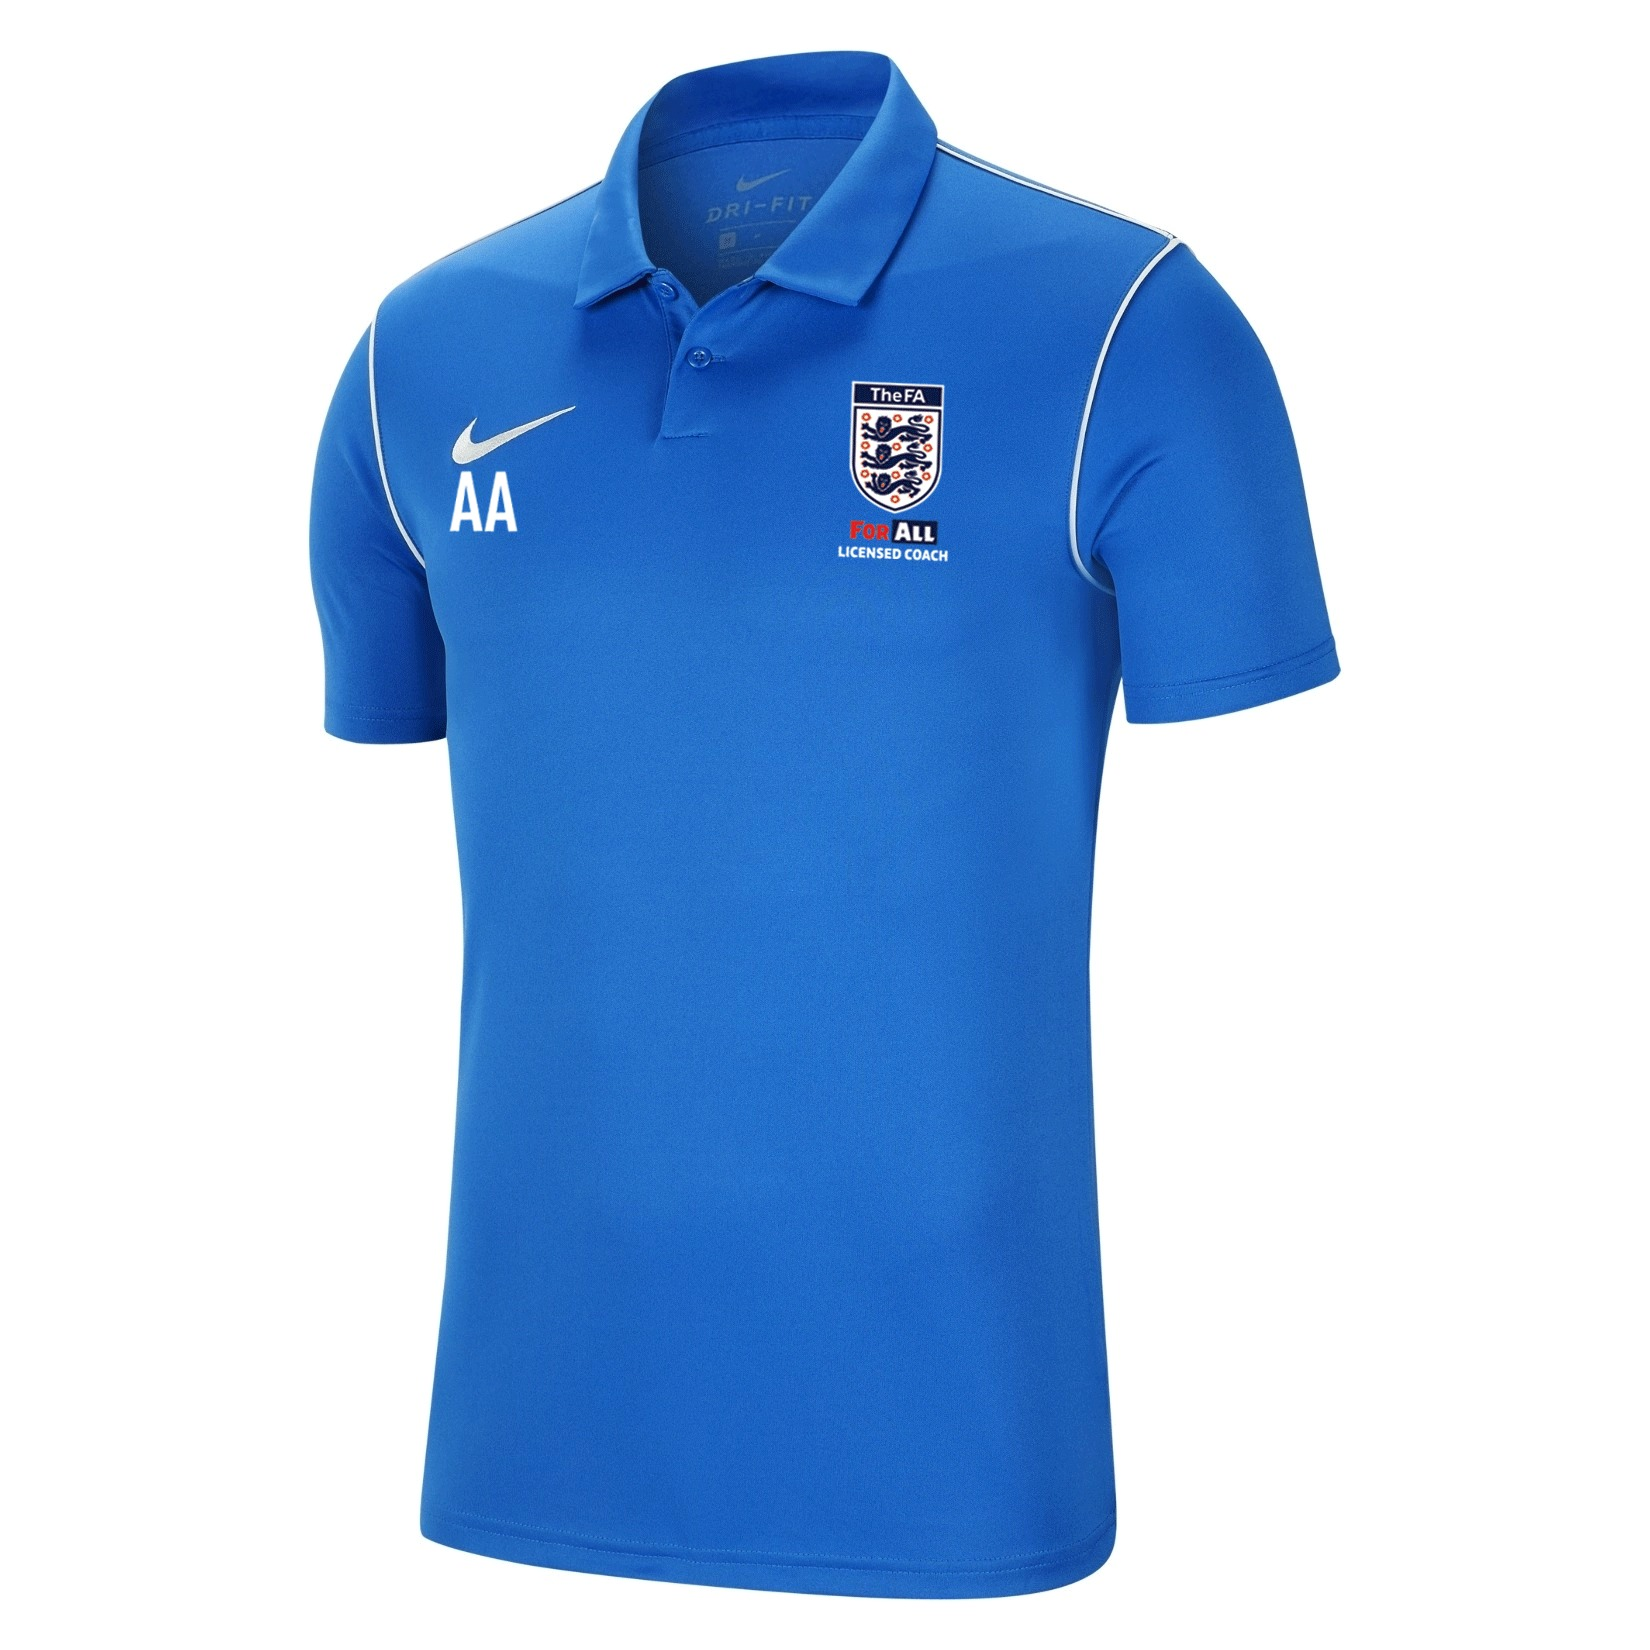 Nike Dri-fit Park 20 Polo Royal Blue-White-White